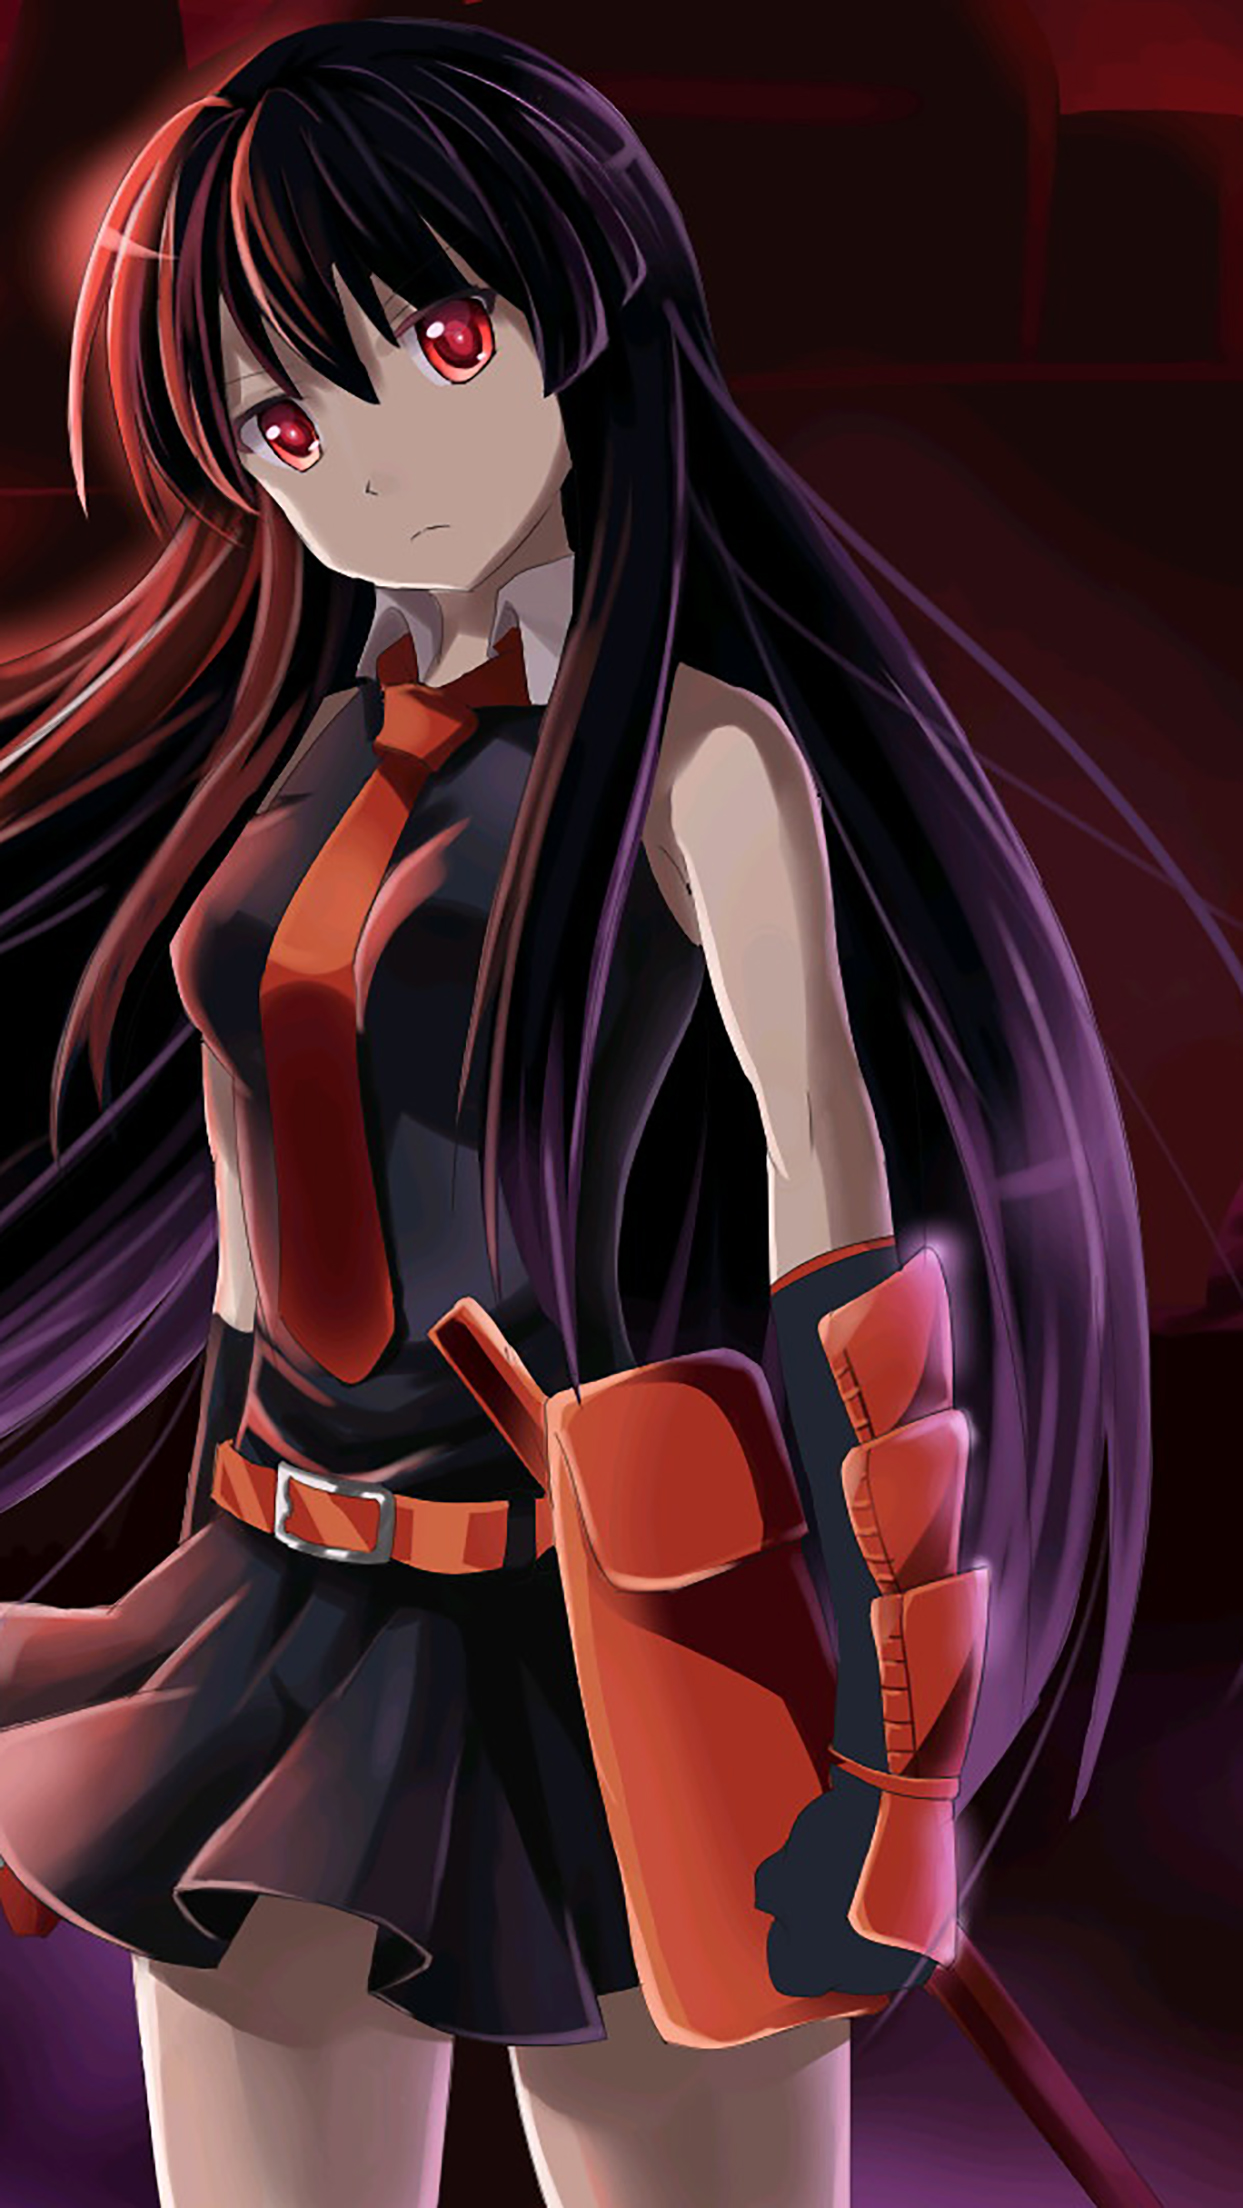 Akame Ga Kill Standing Wallpaper For Iphone X 8 7 6 Free